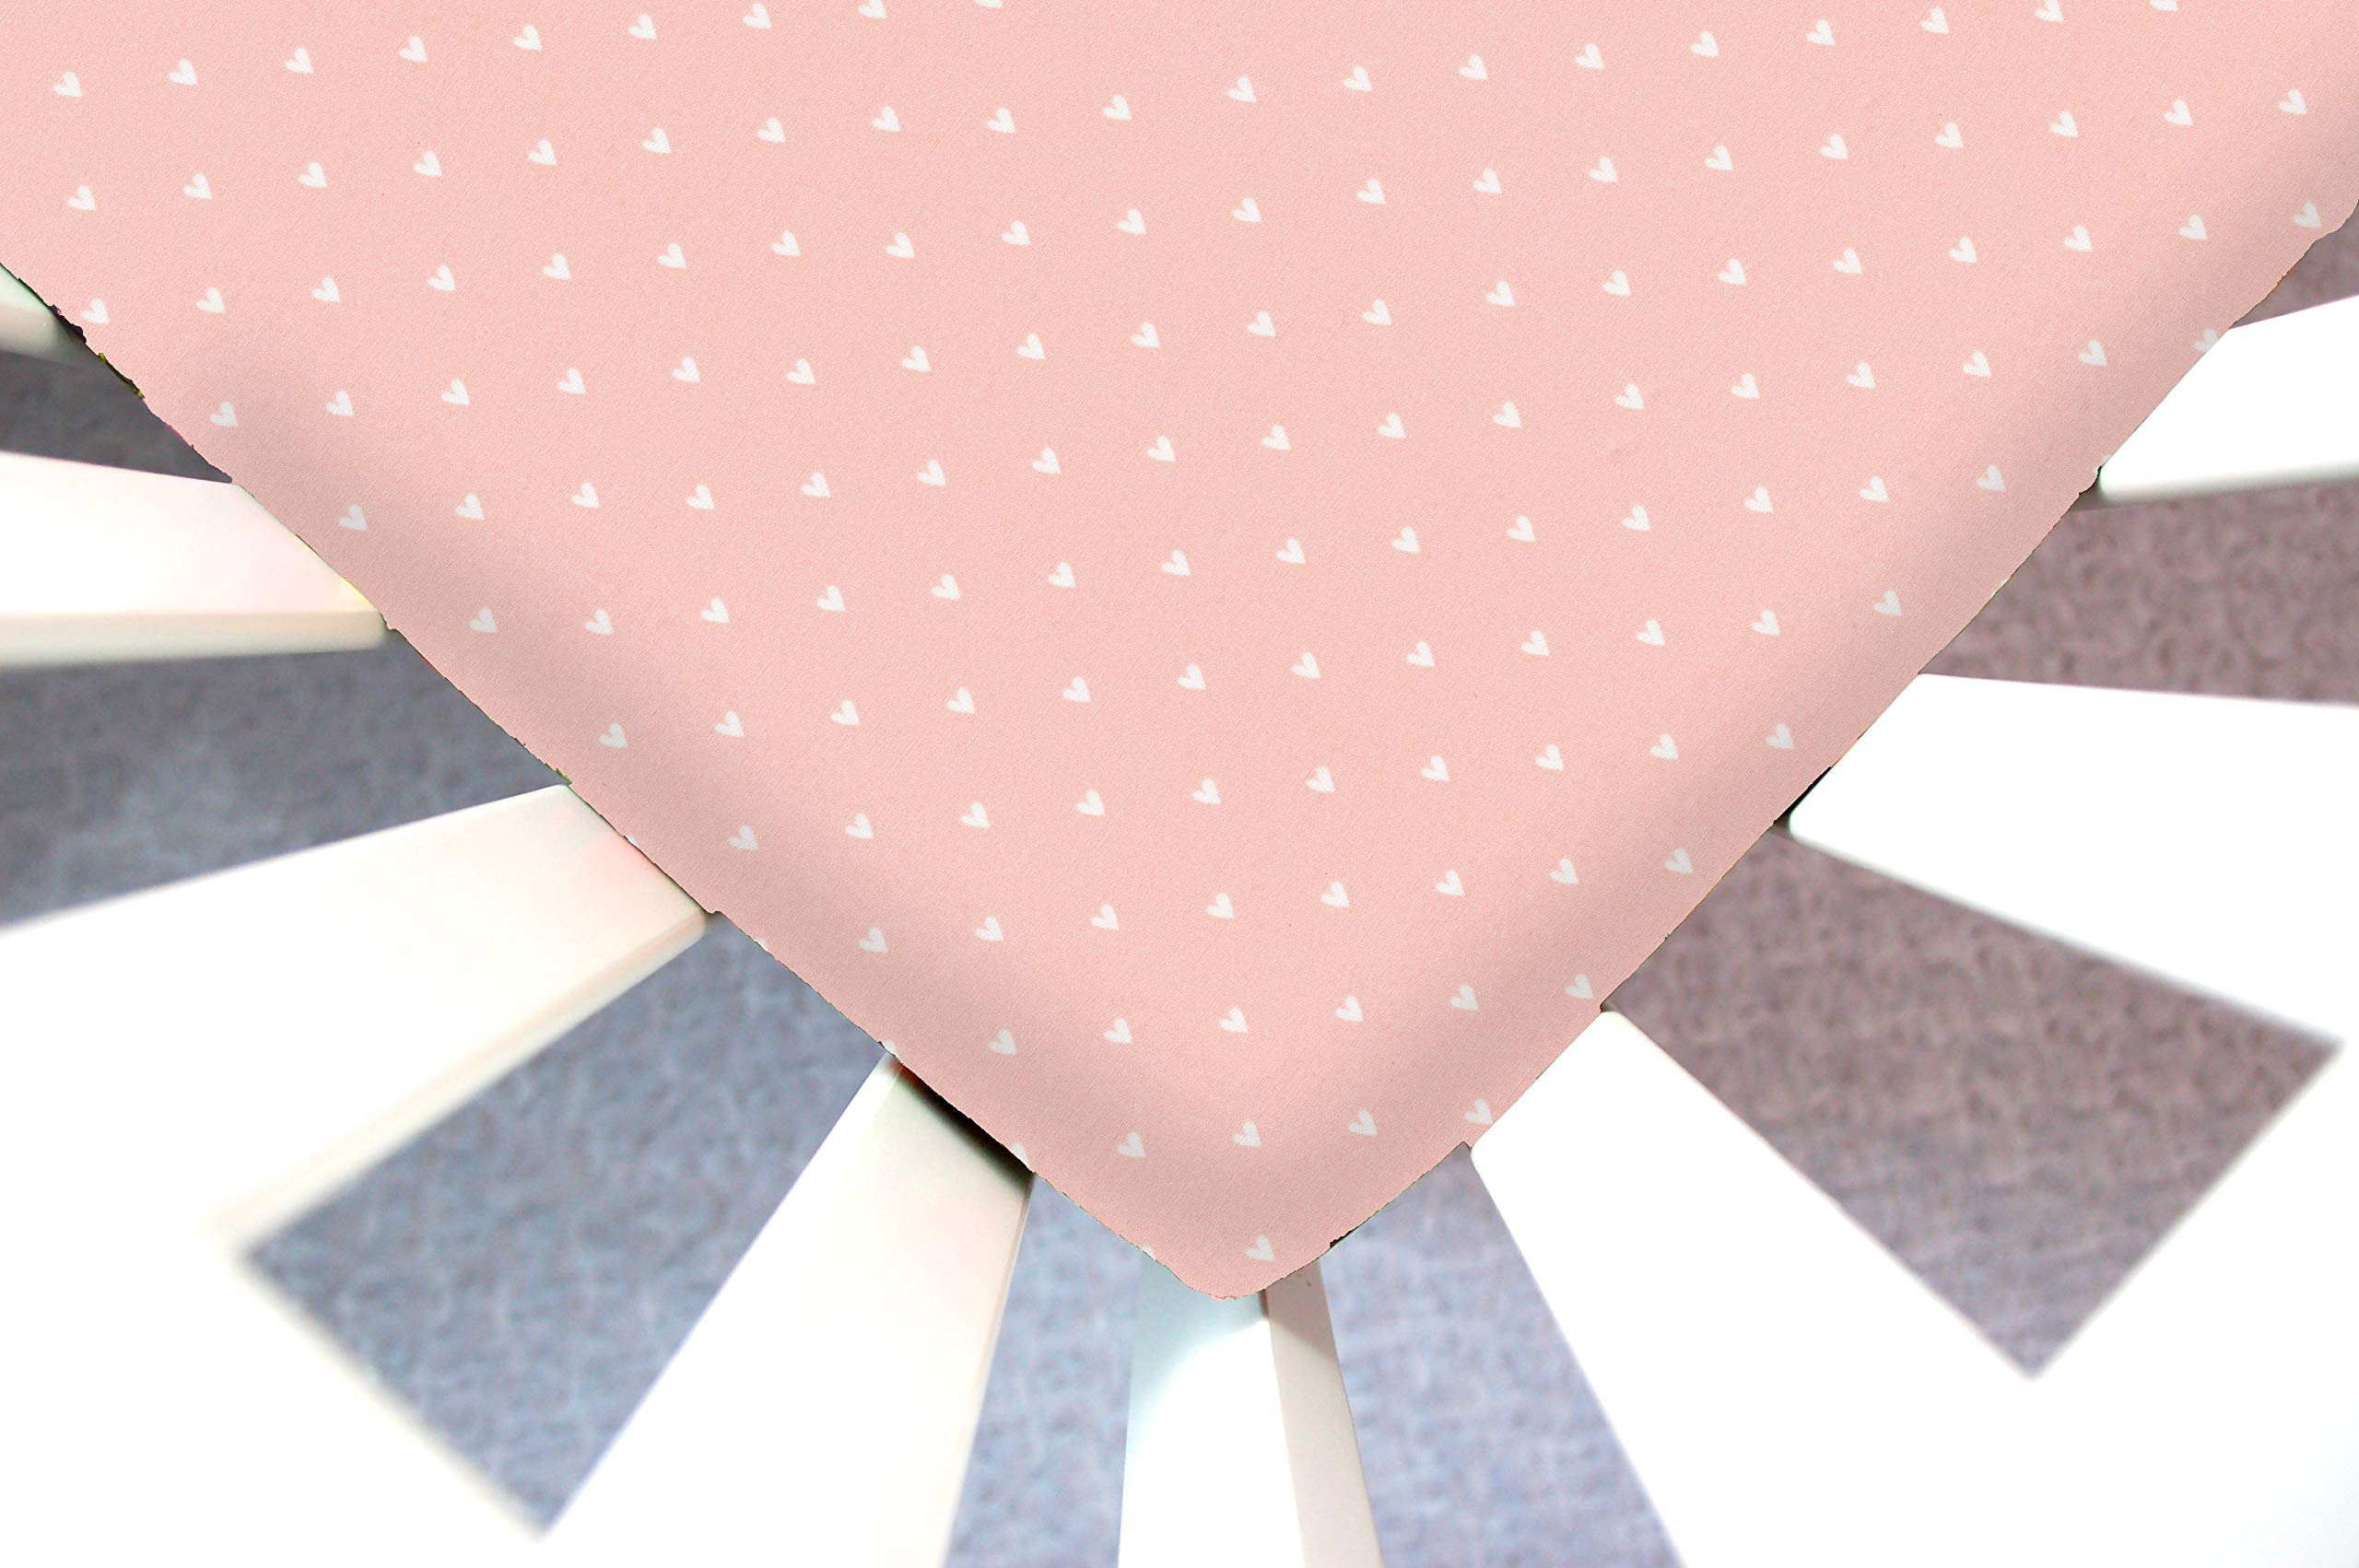 Little Moose by Liza Handmade Sheet Made to Fit a Halo Bassinet in Organic Pink Hearts This Sheet was Not Created or Sold by Halo. by Little Moose By Liza LLC